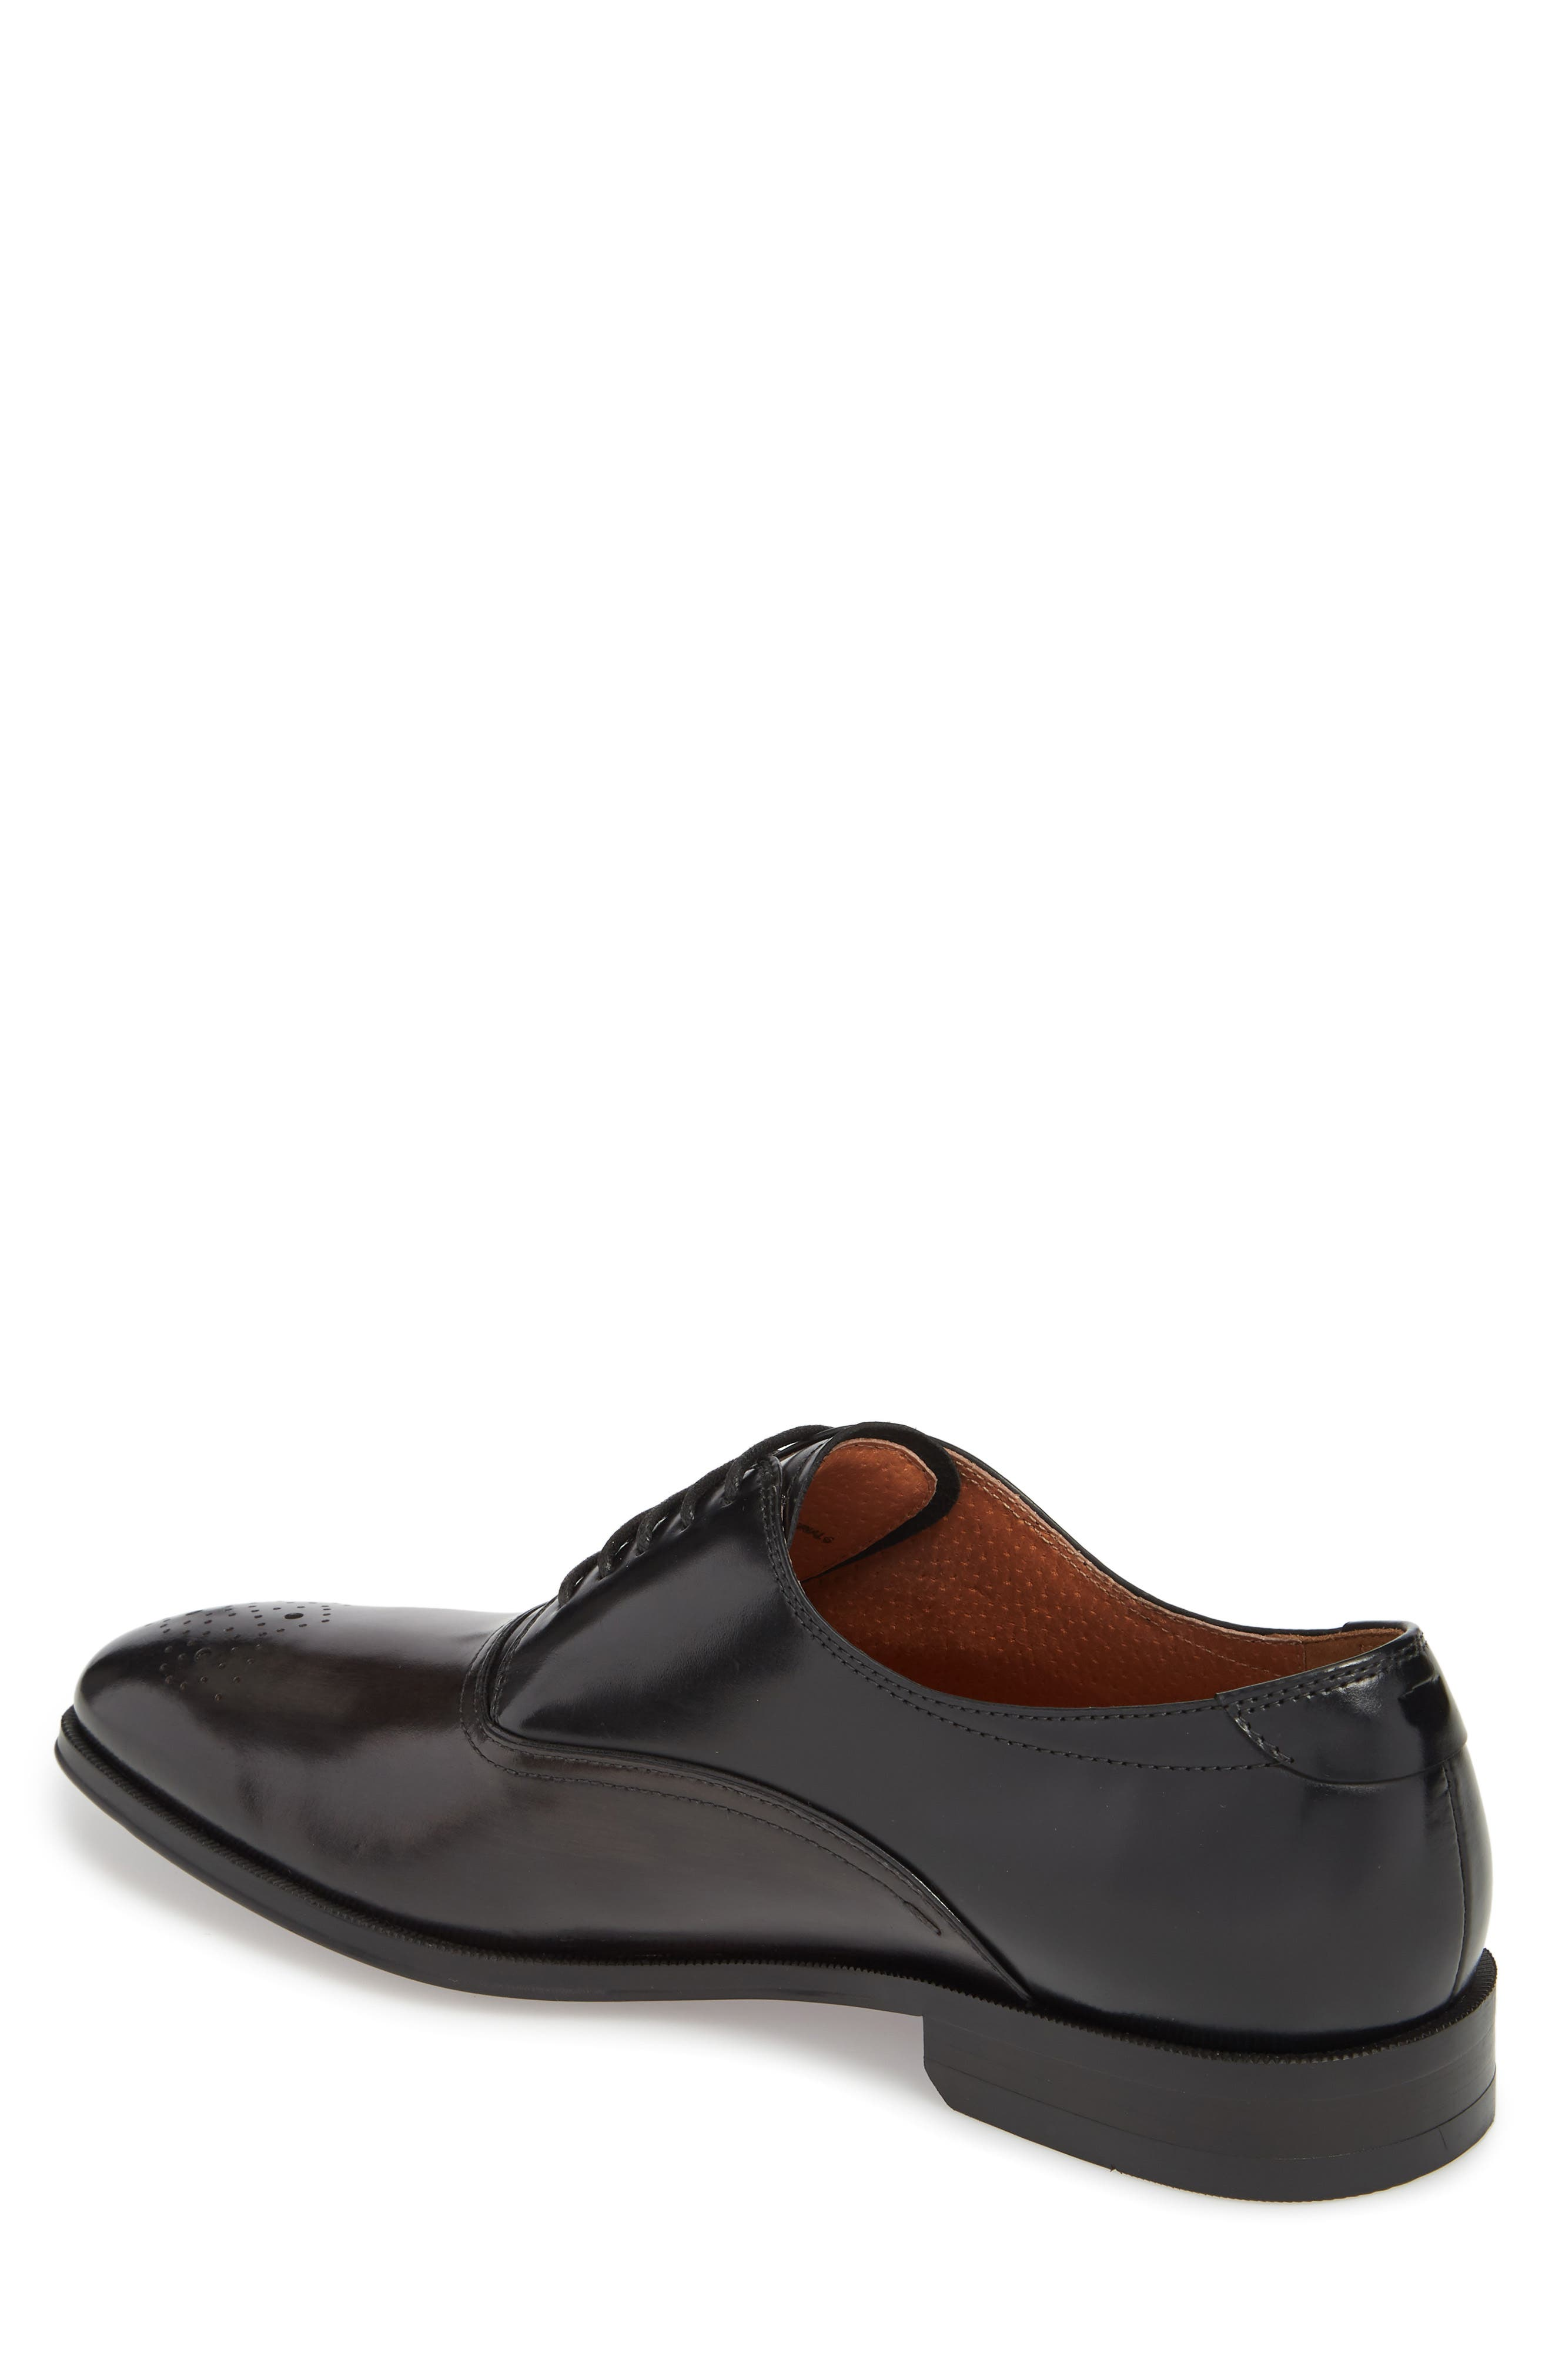 FLORSHEIM, Belfast Brogued Derby, Alternate thumbnail 2, color, GRAY/ BLACK LEATHER